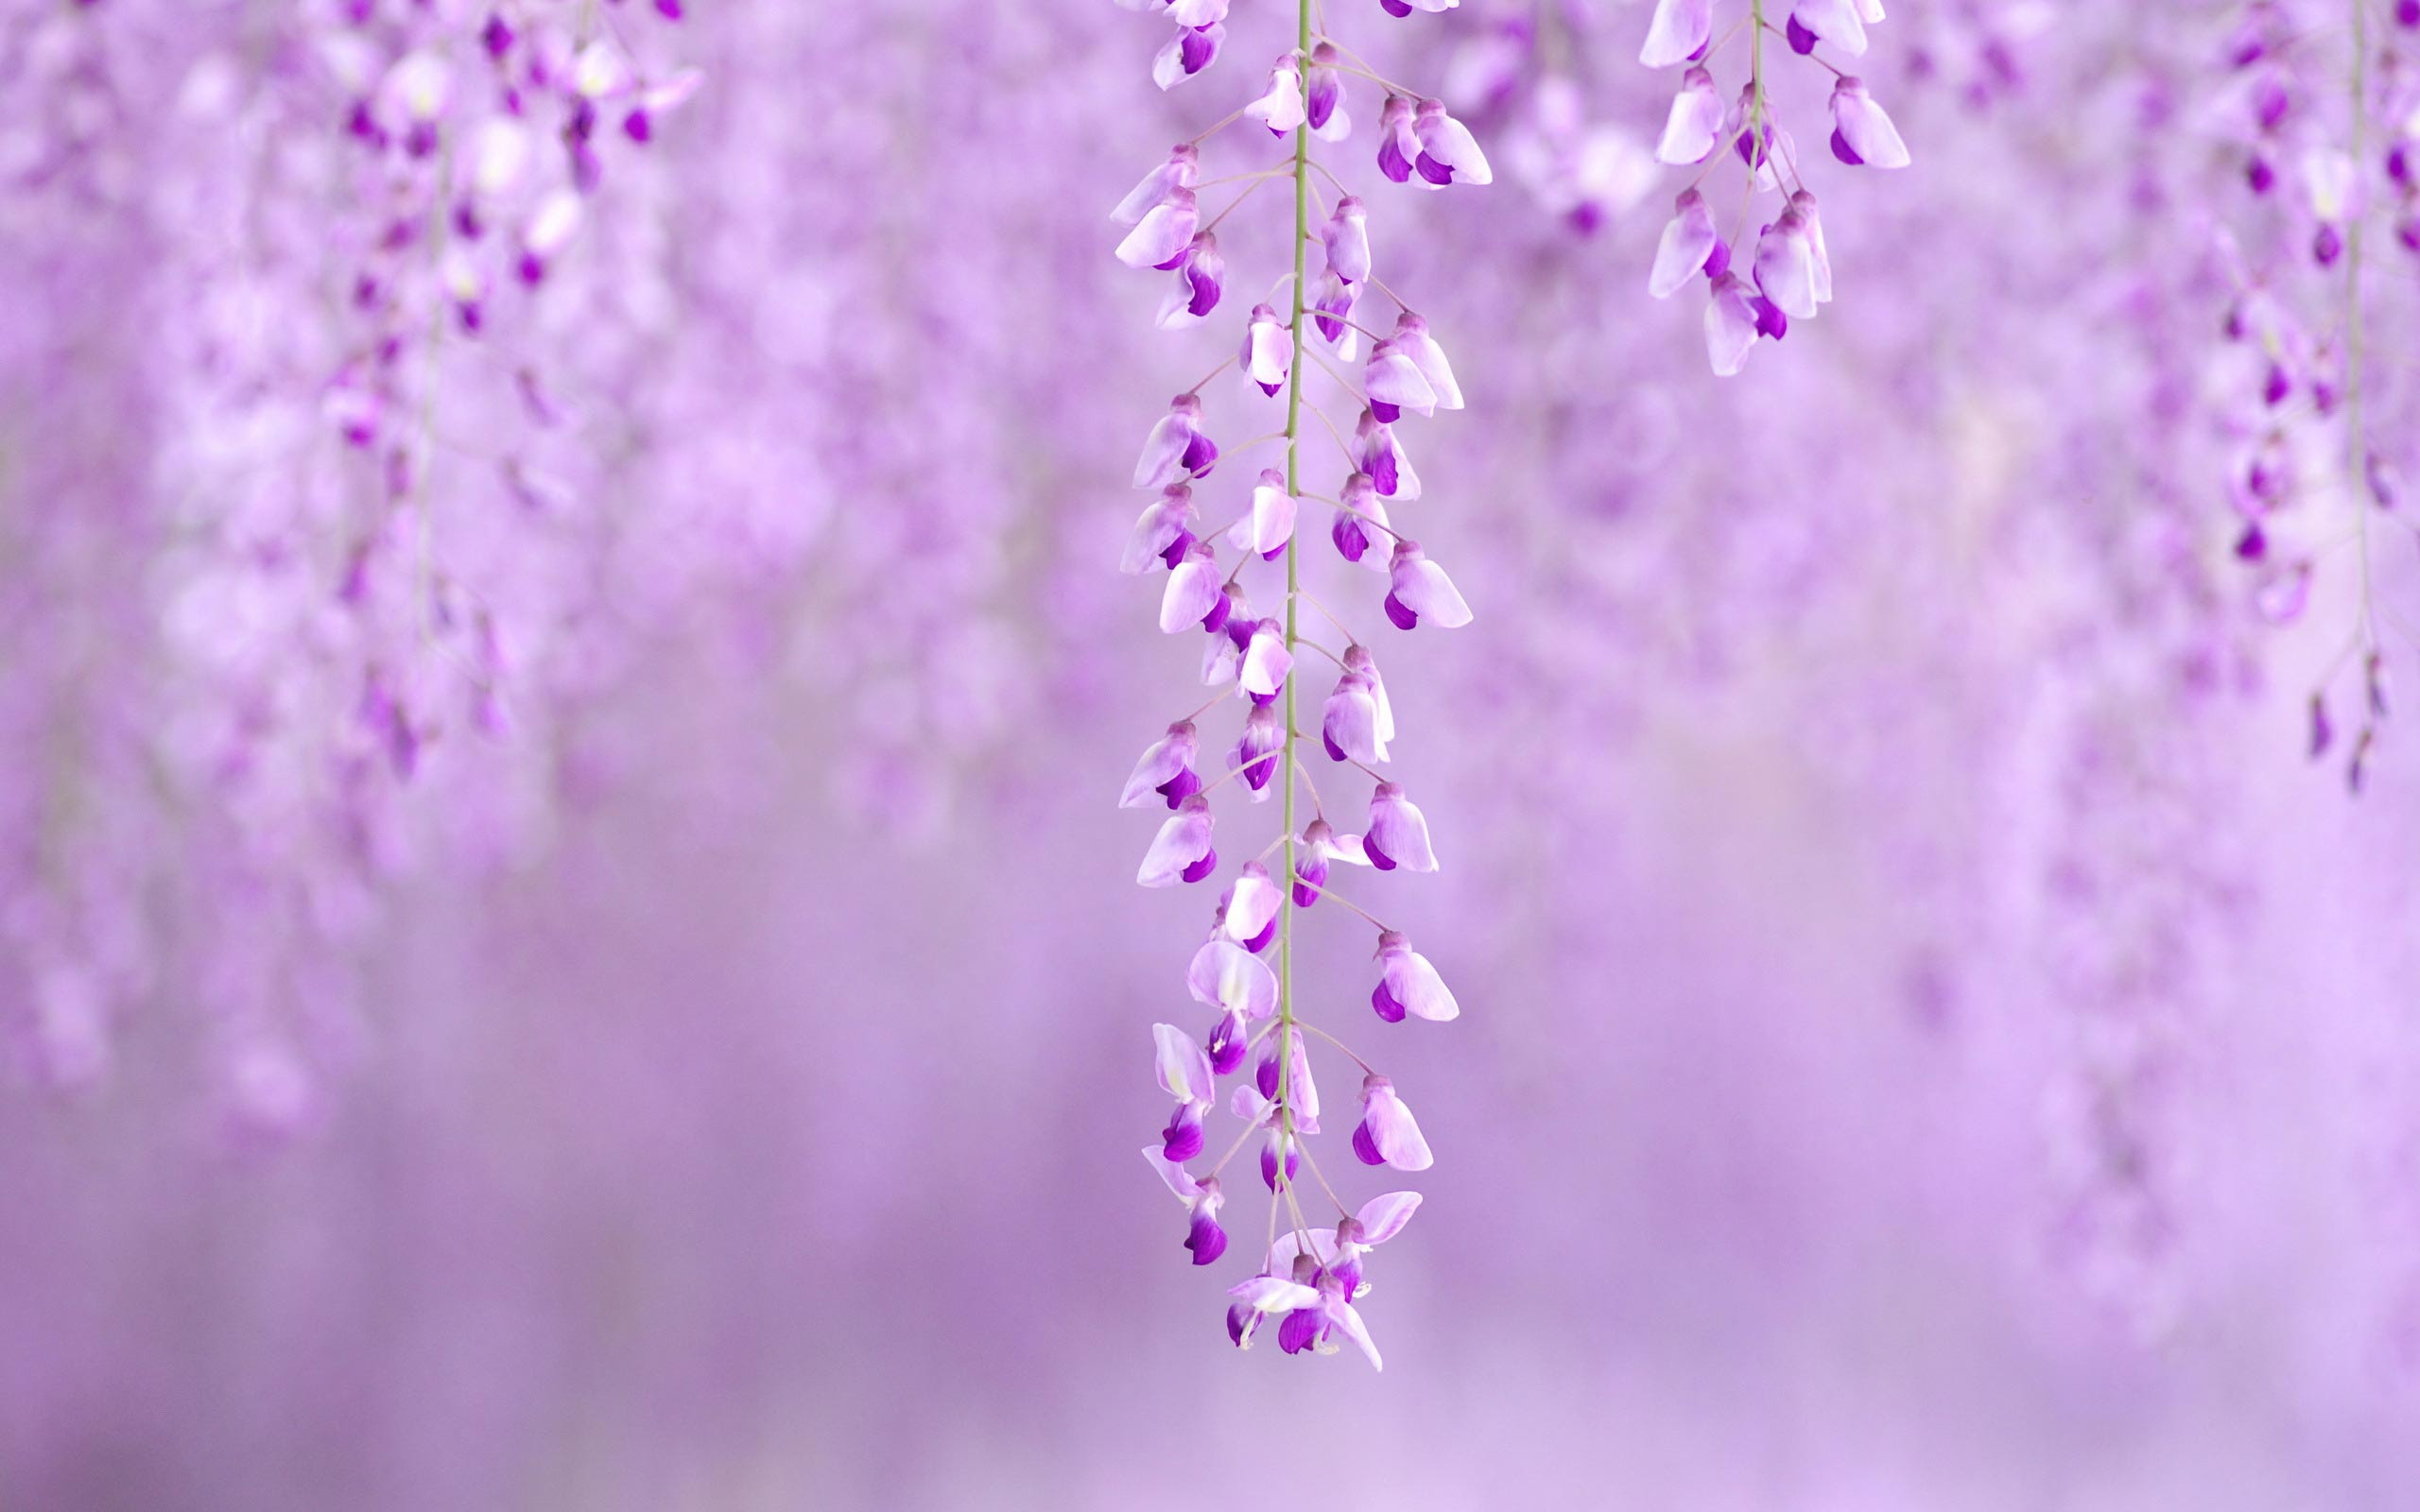 Wallpaper Hd Purple